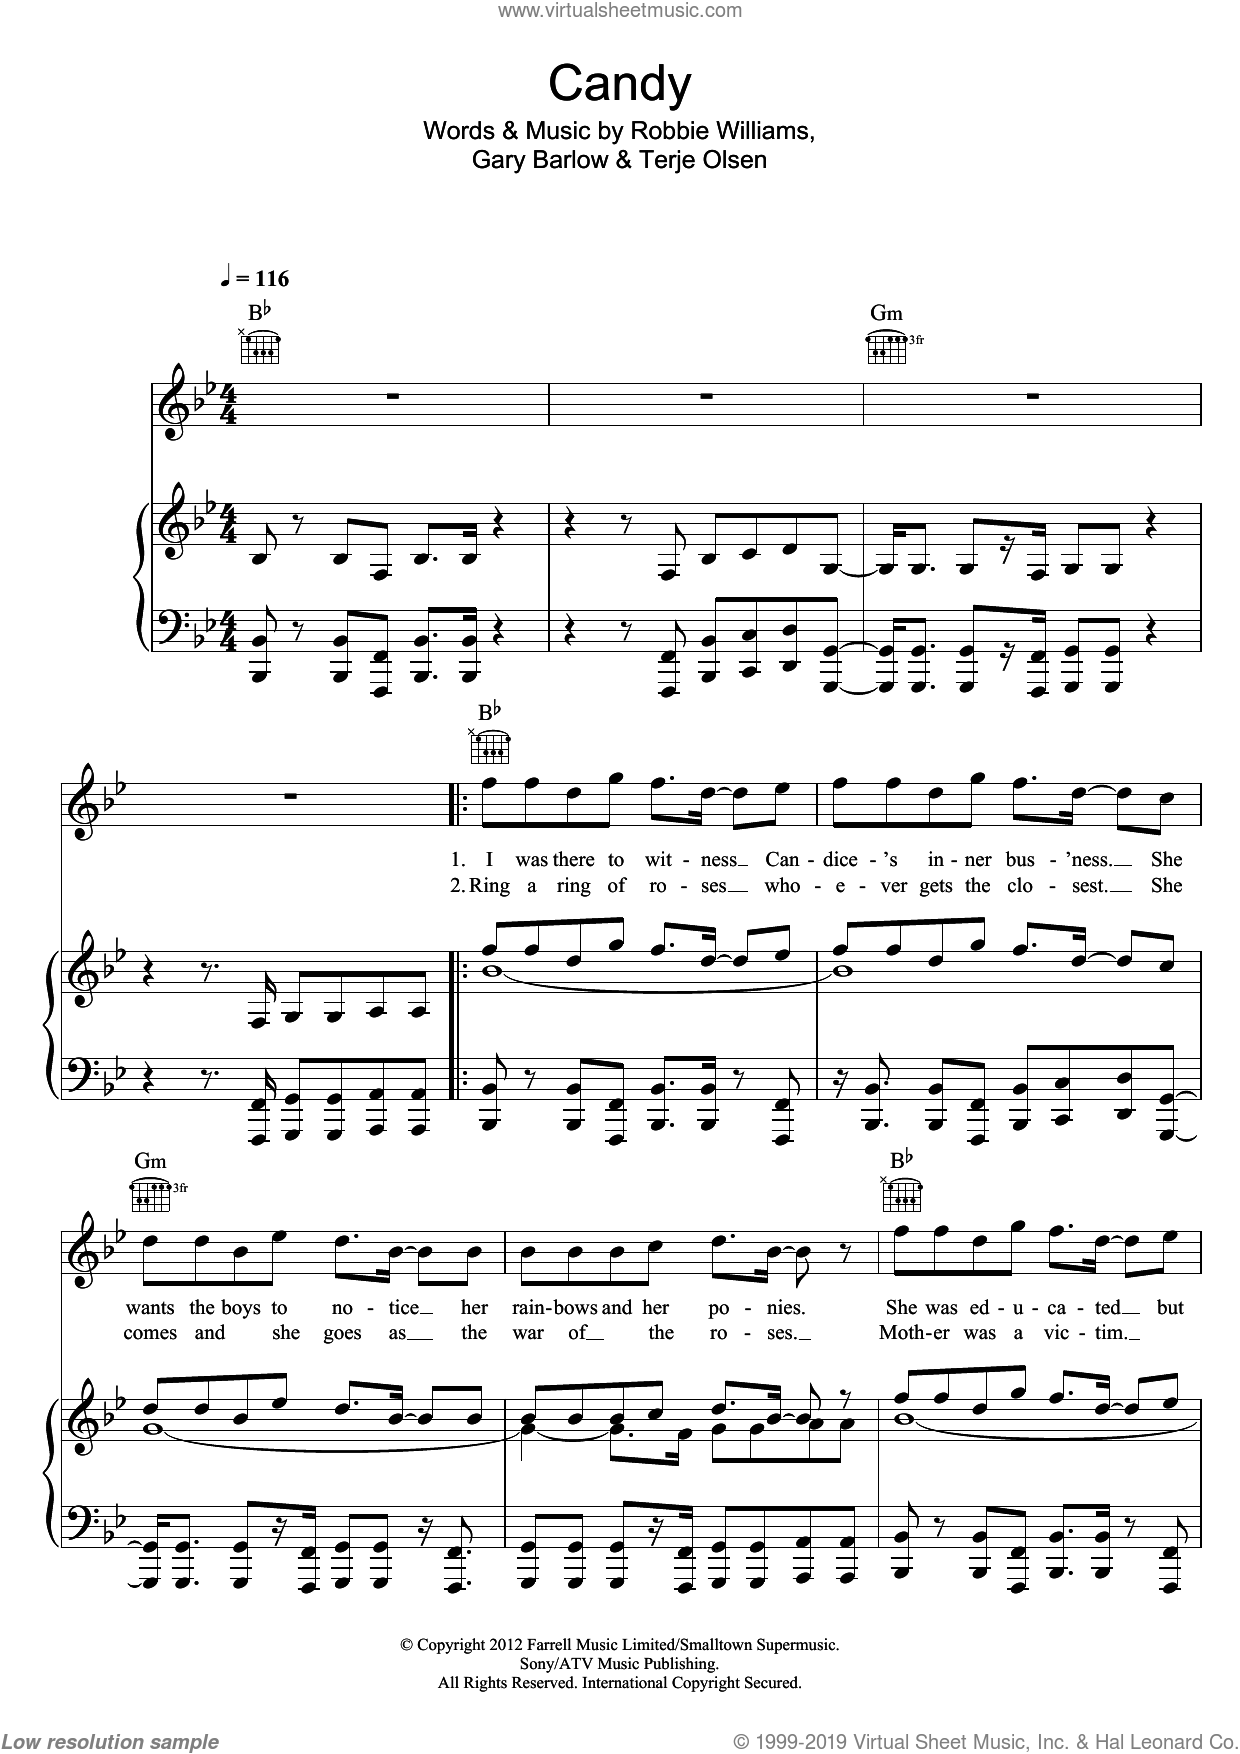 Candy sheet music for voice, piano or guitar by Robbie Williams, Gary Barlow and Terje Olsen, intermediate skill level